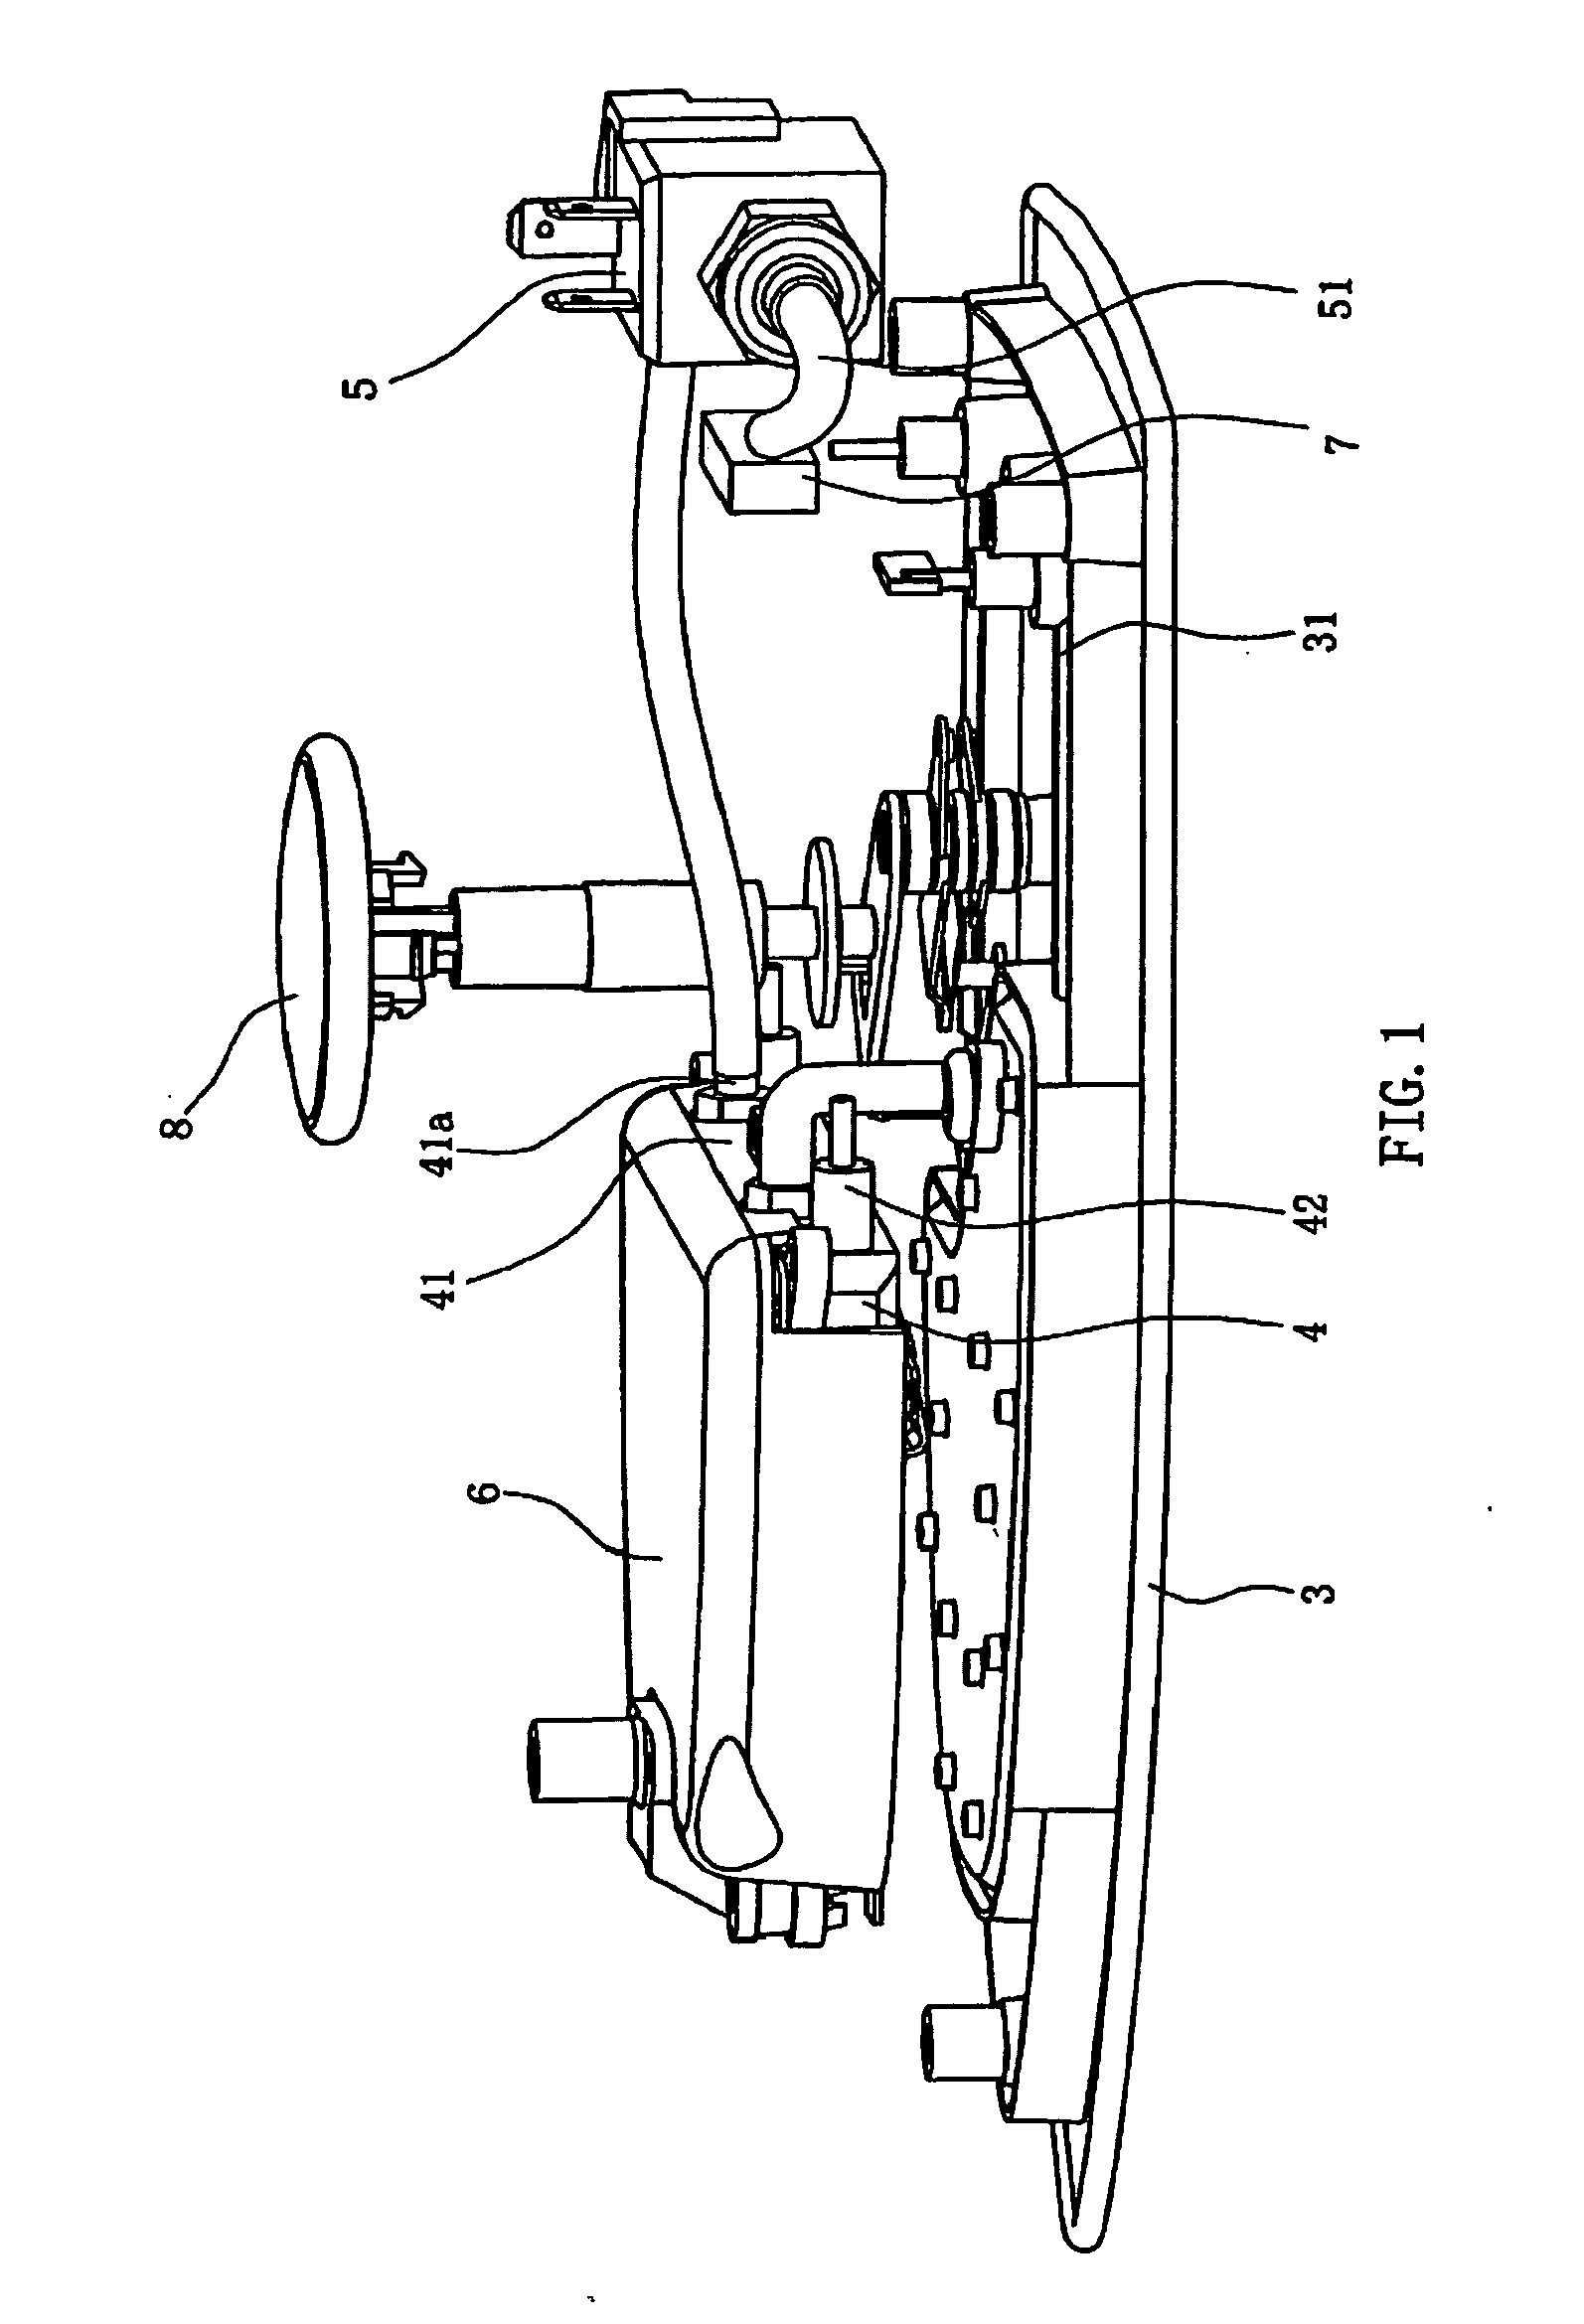 patent ep2009172a2 - an electric steam iron